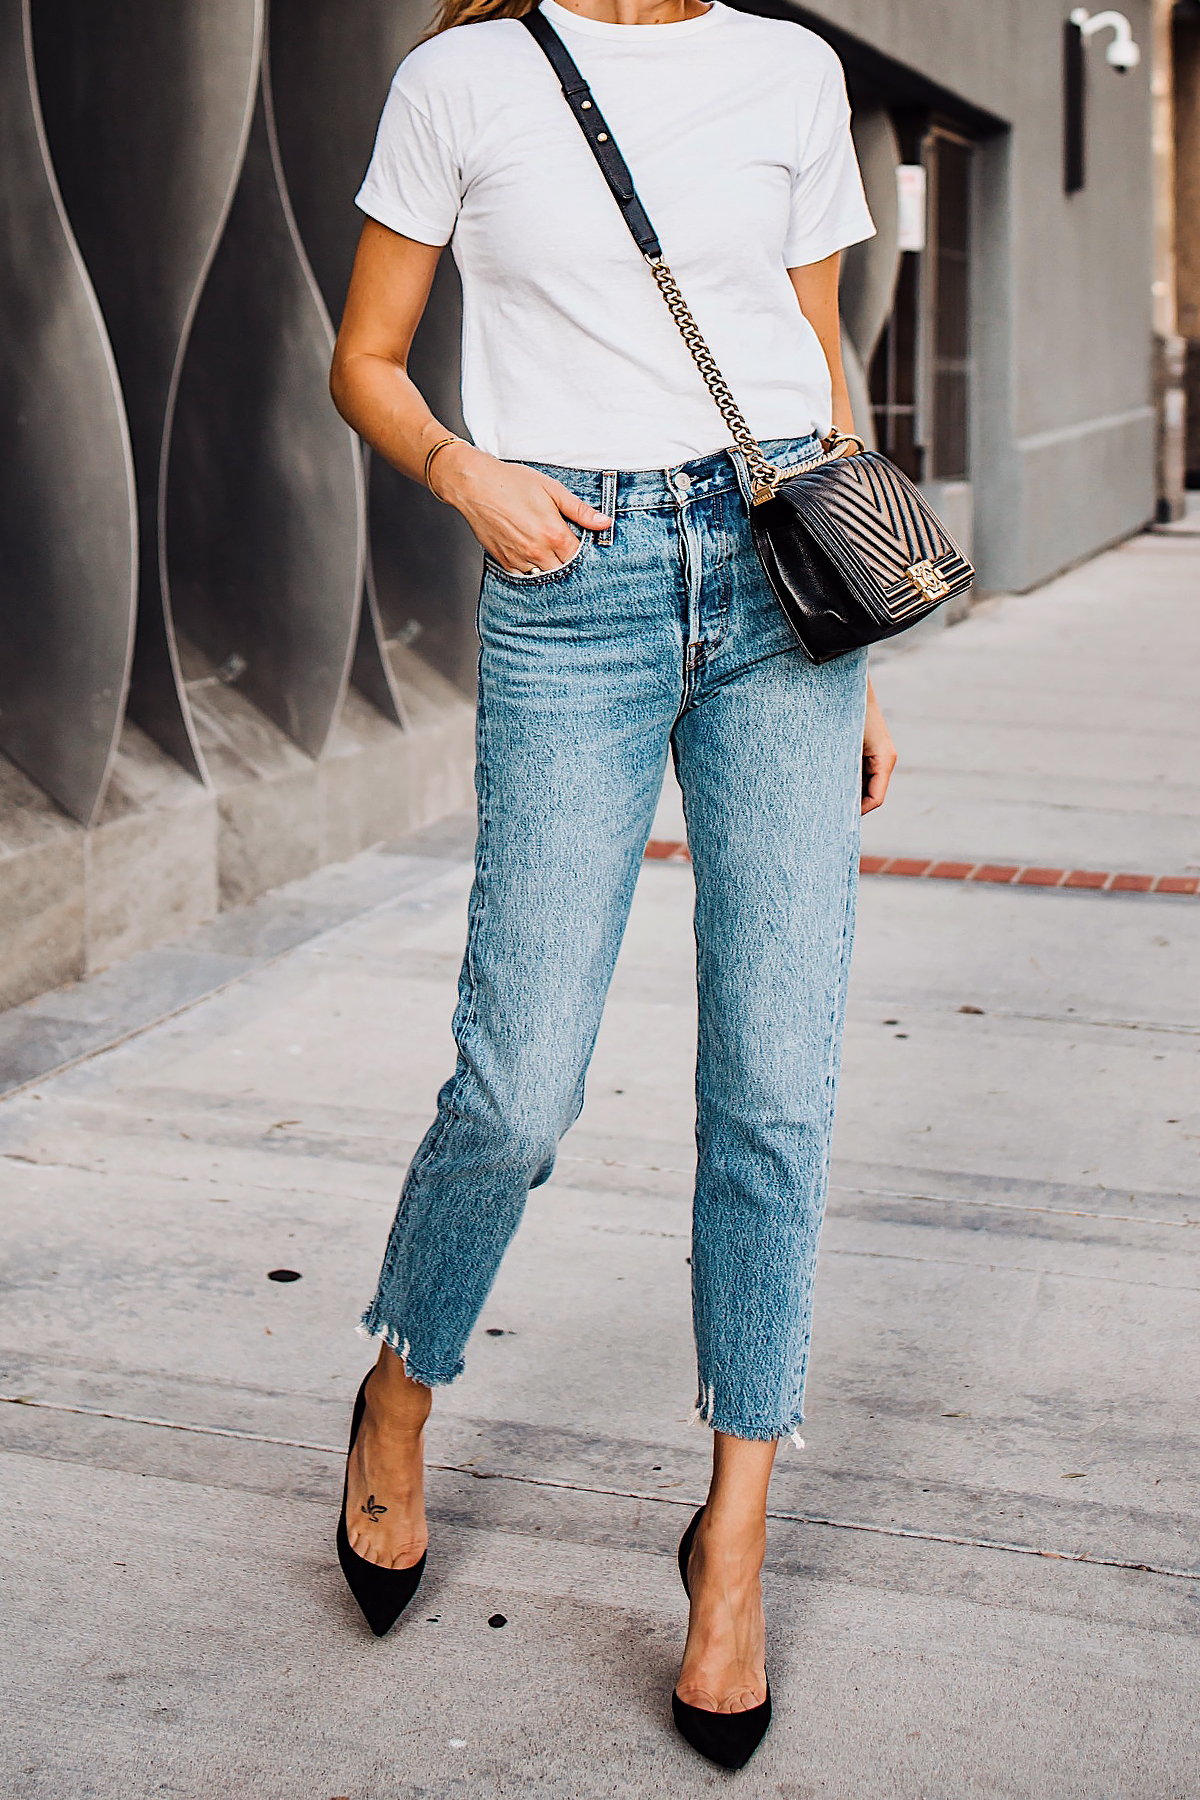 Woman Wearing Fashion Jackson White Tshirt Levis Wedgie Jeans Chanel Black Boy Bag Christian Louboutin Black Pumps Fashion Jackson San Diego Fashion Blogger Street Style